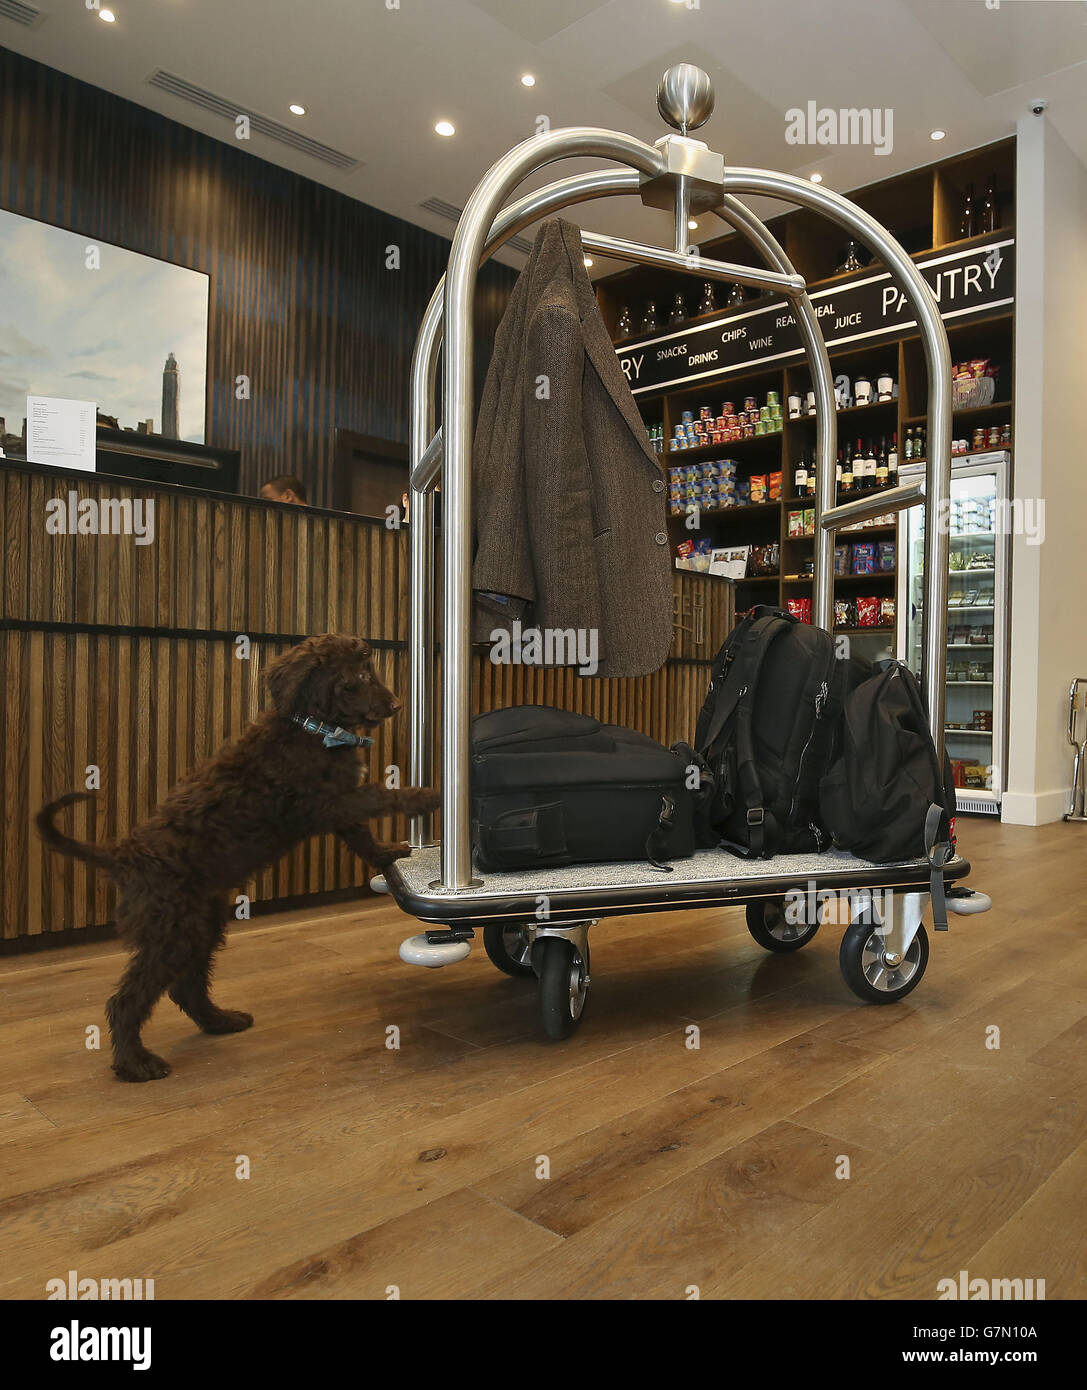 London's first hotel dog - Stock Image